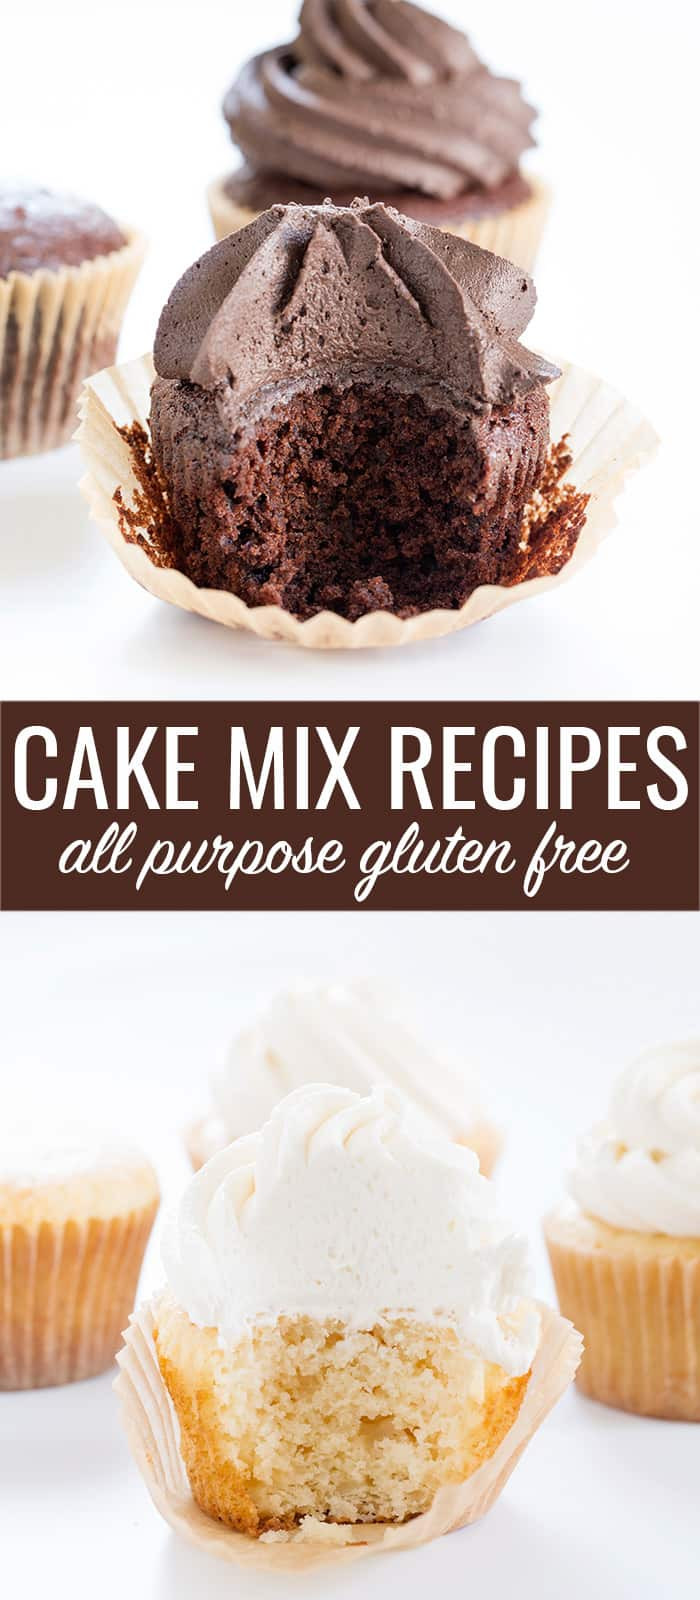 Gluten And Dairy Free Cake Recipes Easy  How To Eat Gluten Free The 10 Recipes You Need To Master